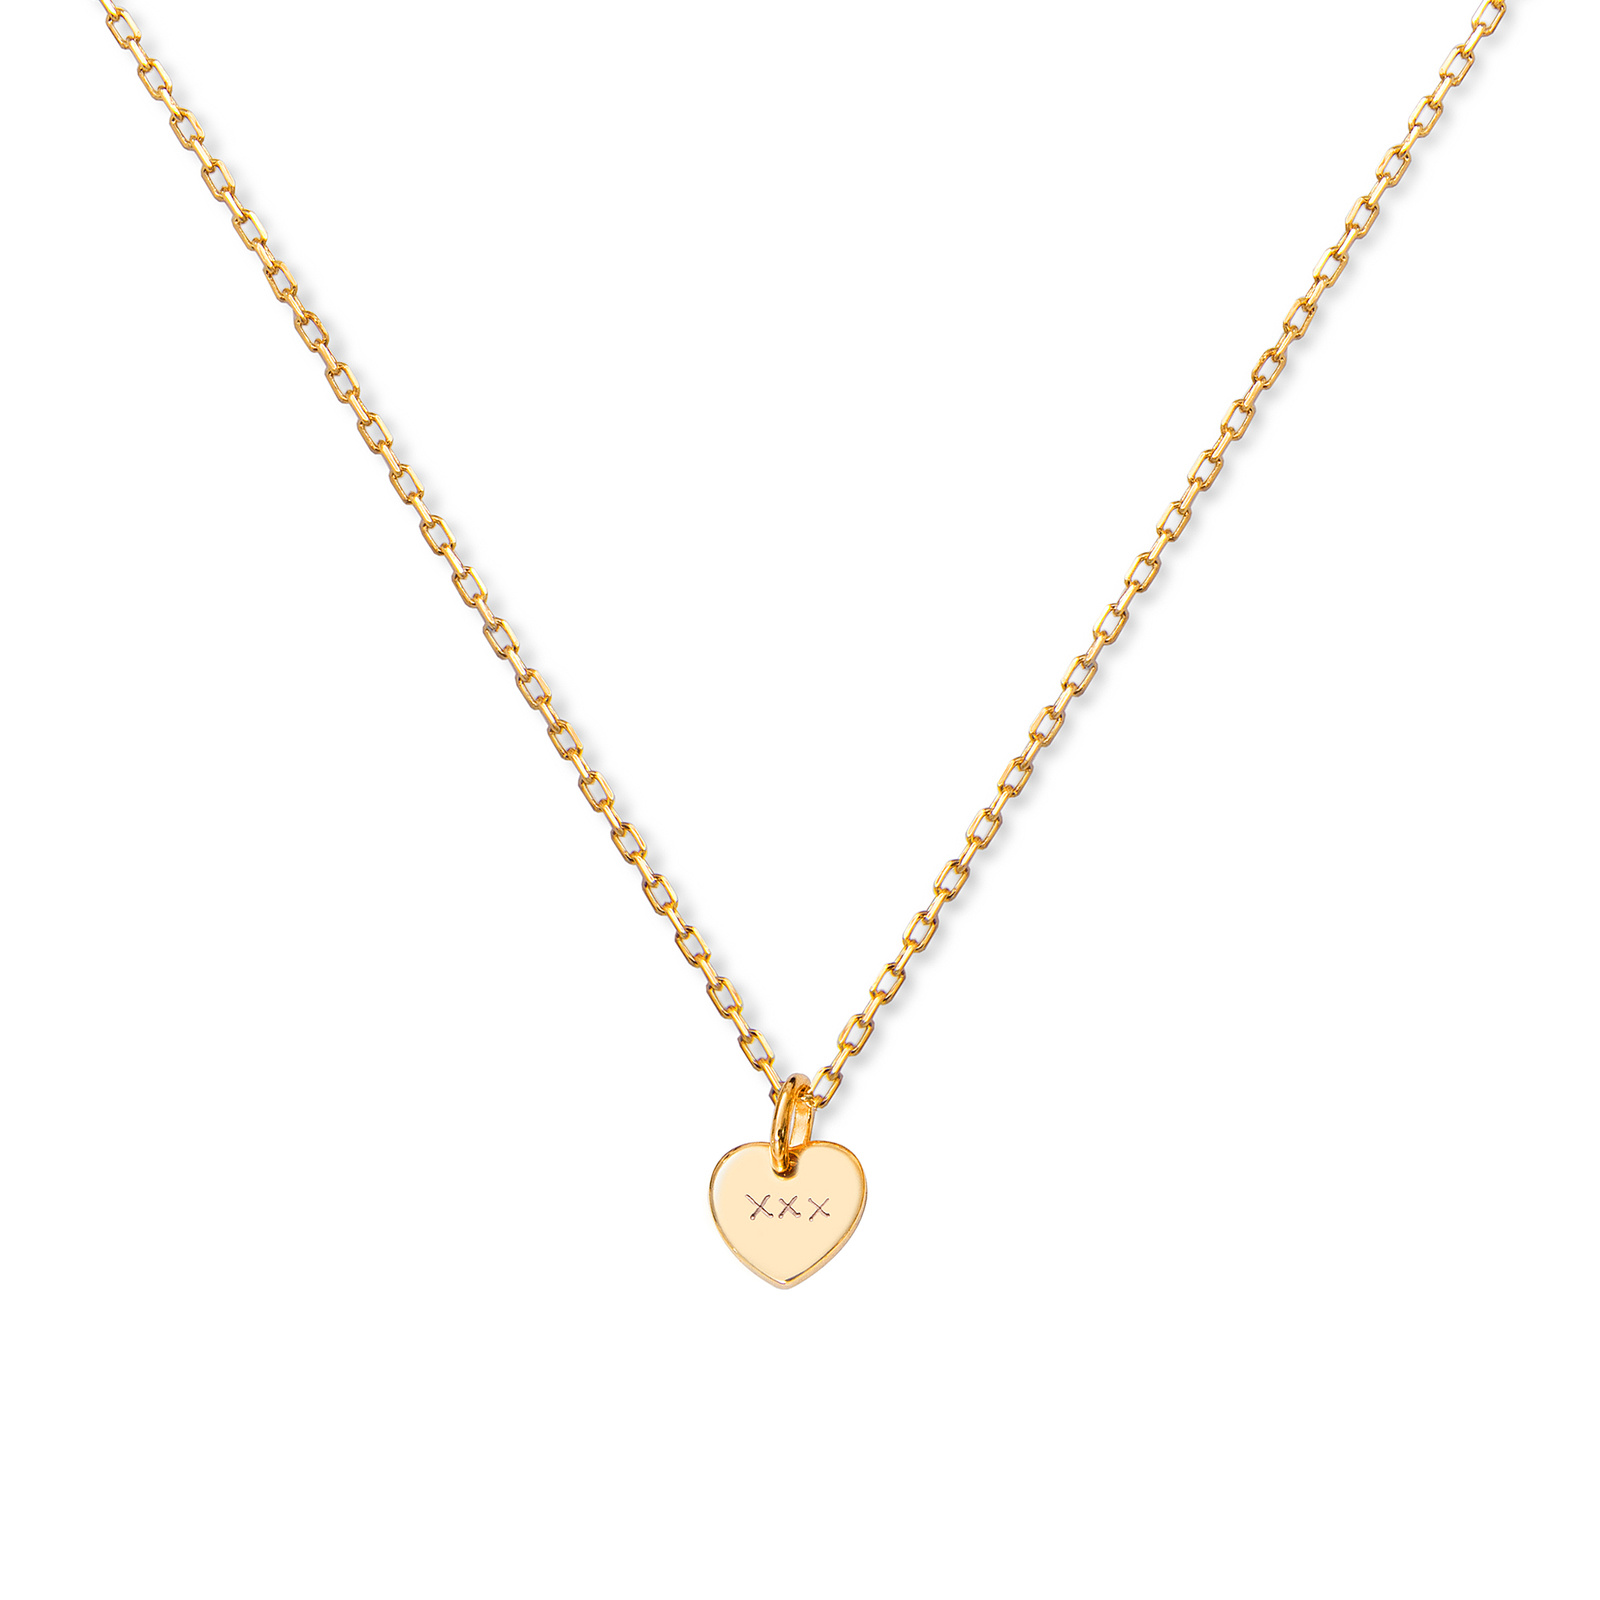 Merci Maman 18ct Yellow Gold Pated Kiss Kiss Kiss Pendant